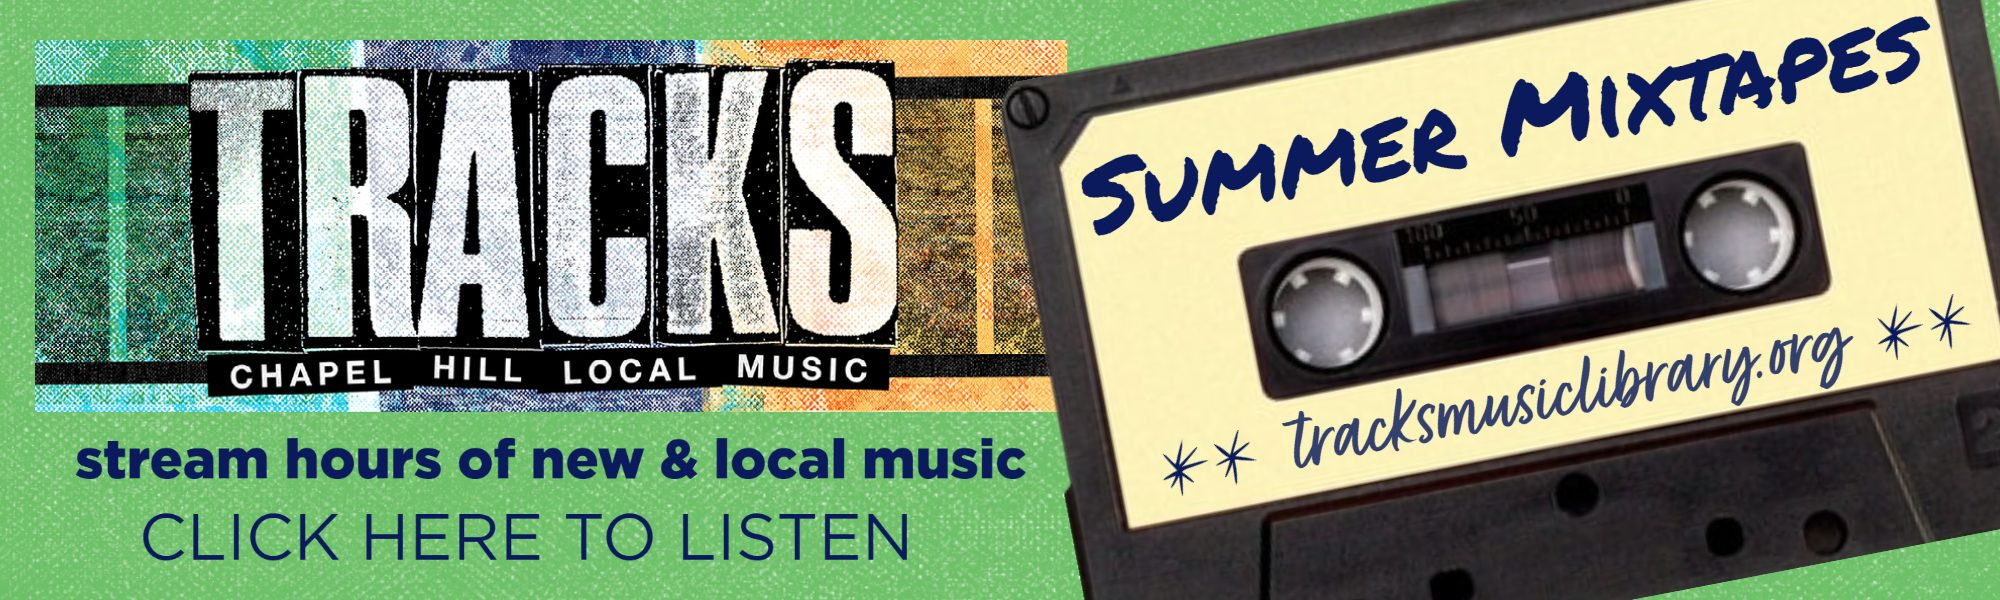 Tracks - Chapel Hill Local Music. Stream hours of new and local music. Click here to listen.